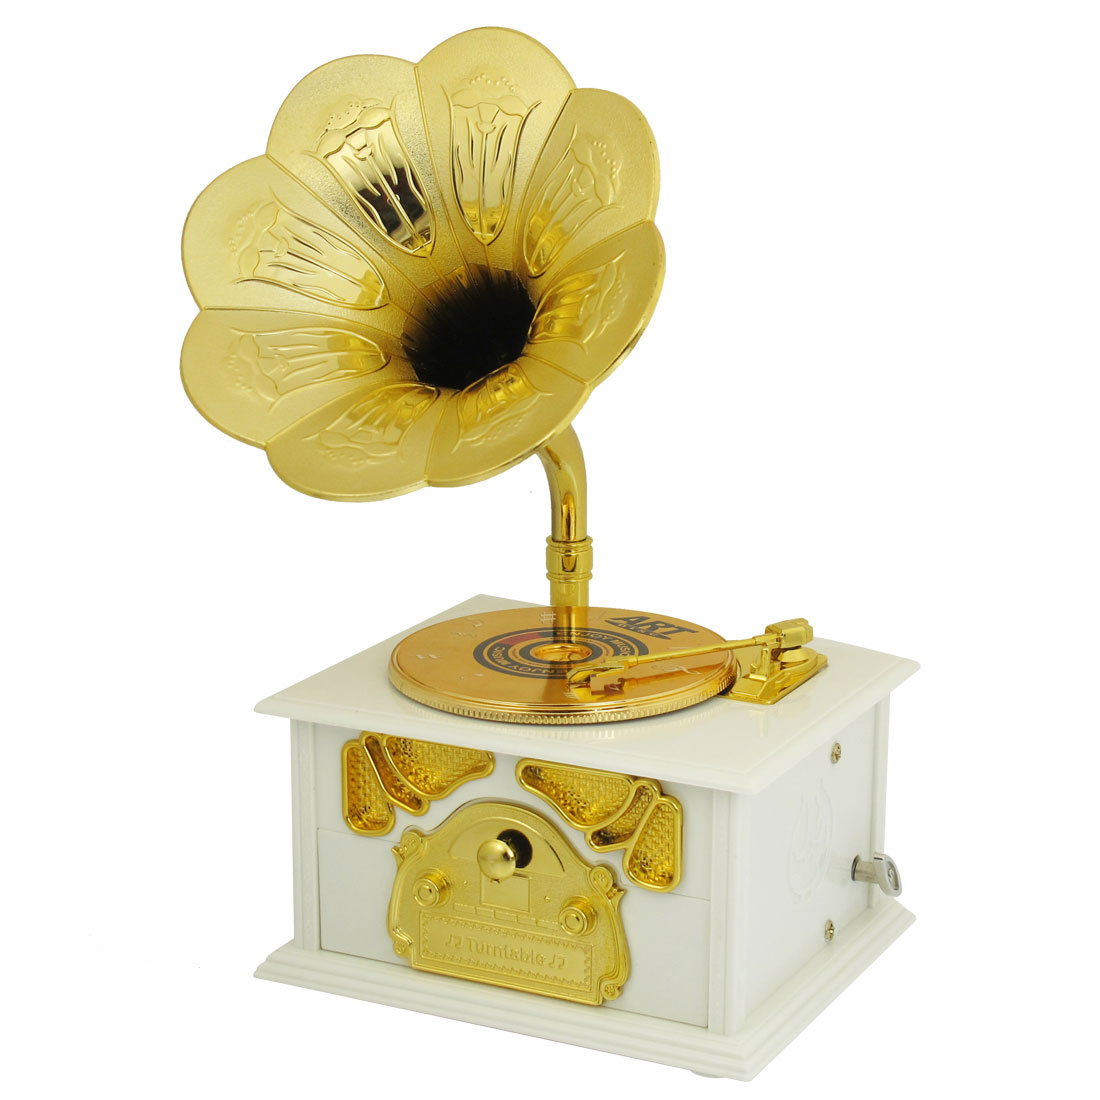 Home Desktop Decoration White Plastic Antique Dic Music Box Toy for Child